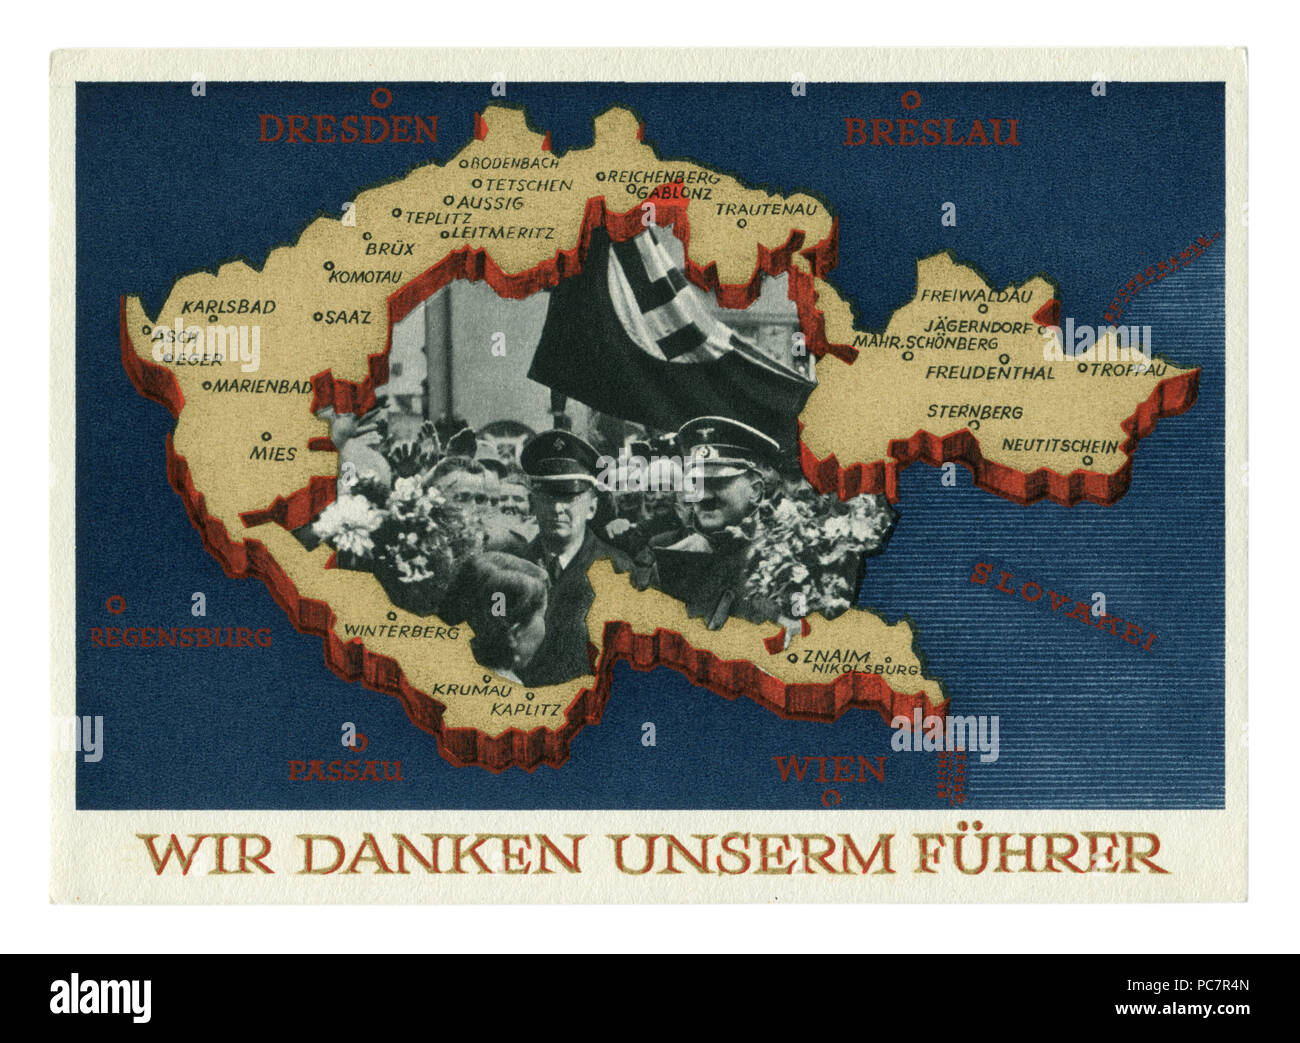 German historical postcard: Plebiscite on the accession of the Sudetenland. Annexation of portions of Czechoslovakia. 29 September 1938, Germany - Stock Image